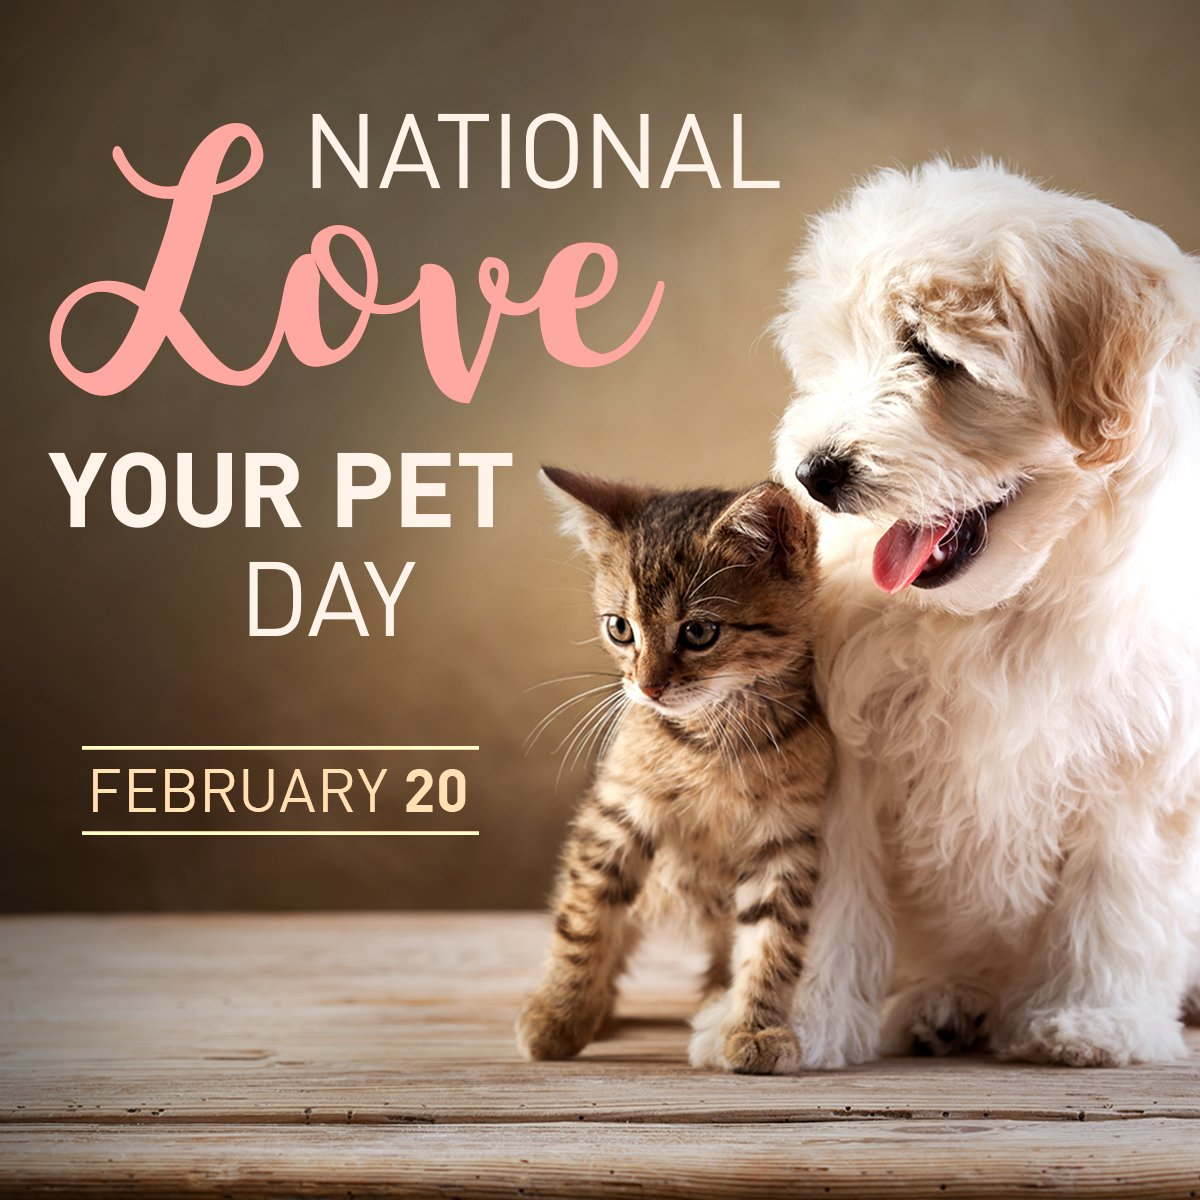 Happy National Love Your Pet Day! Show your #love by sharing your #Pet pictures with us.  #PCSPCA #Pawsitivity #Dogs #Cats #PassaicCounty 🐶🐱❤️🐾 https://t.co/LQ7VlEvuBJ